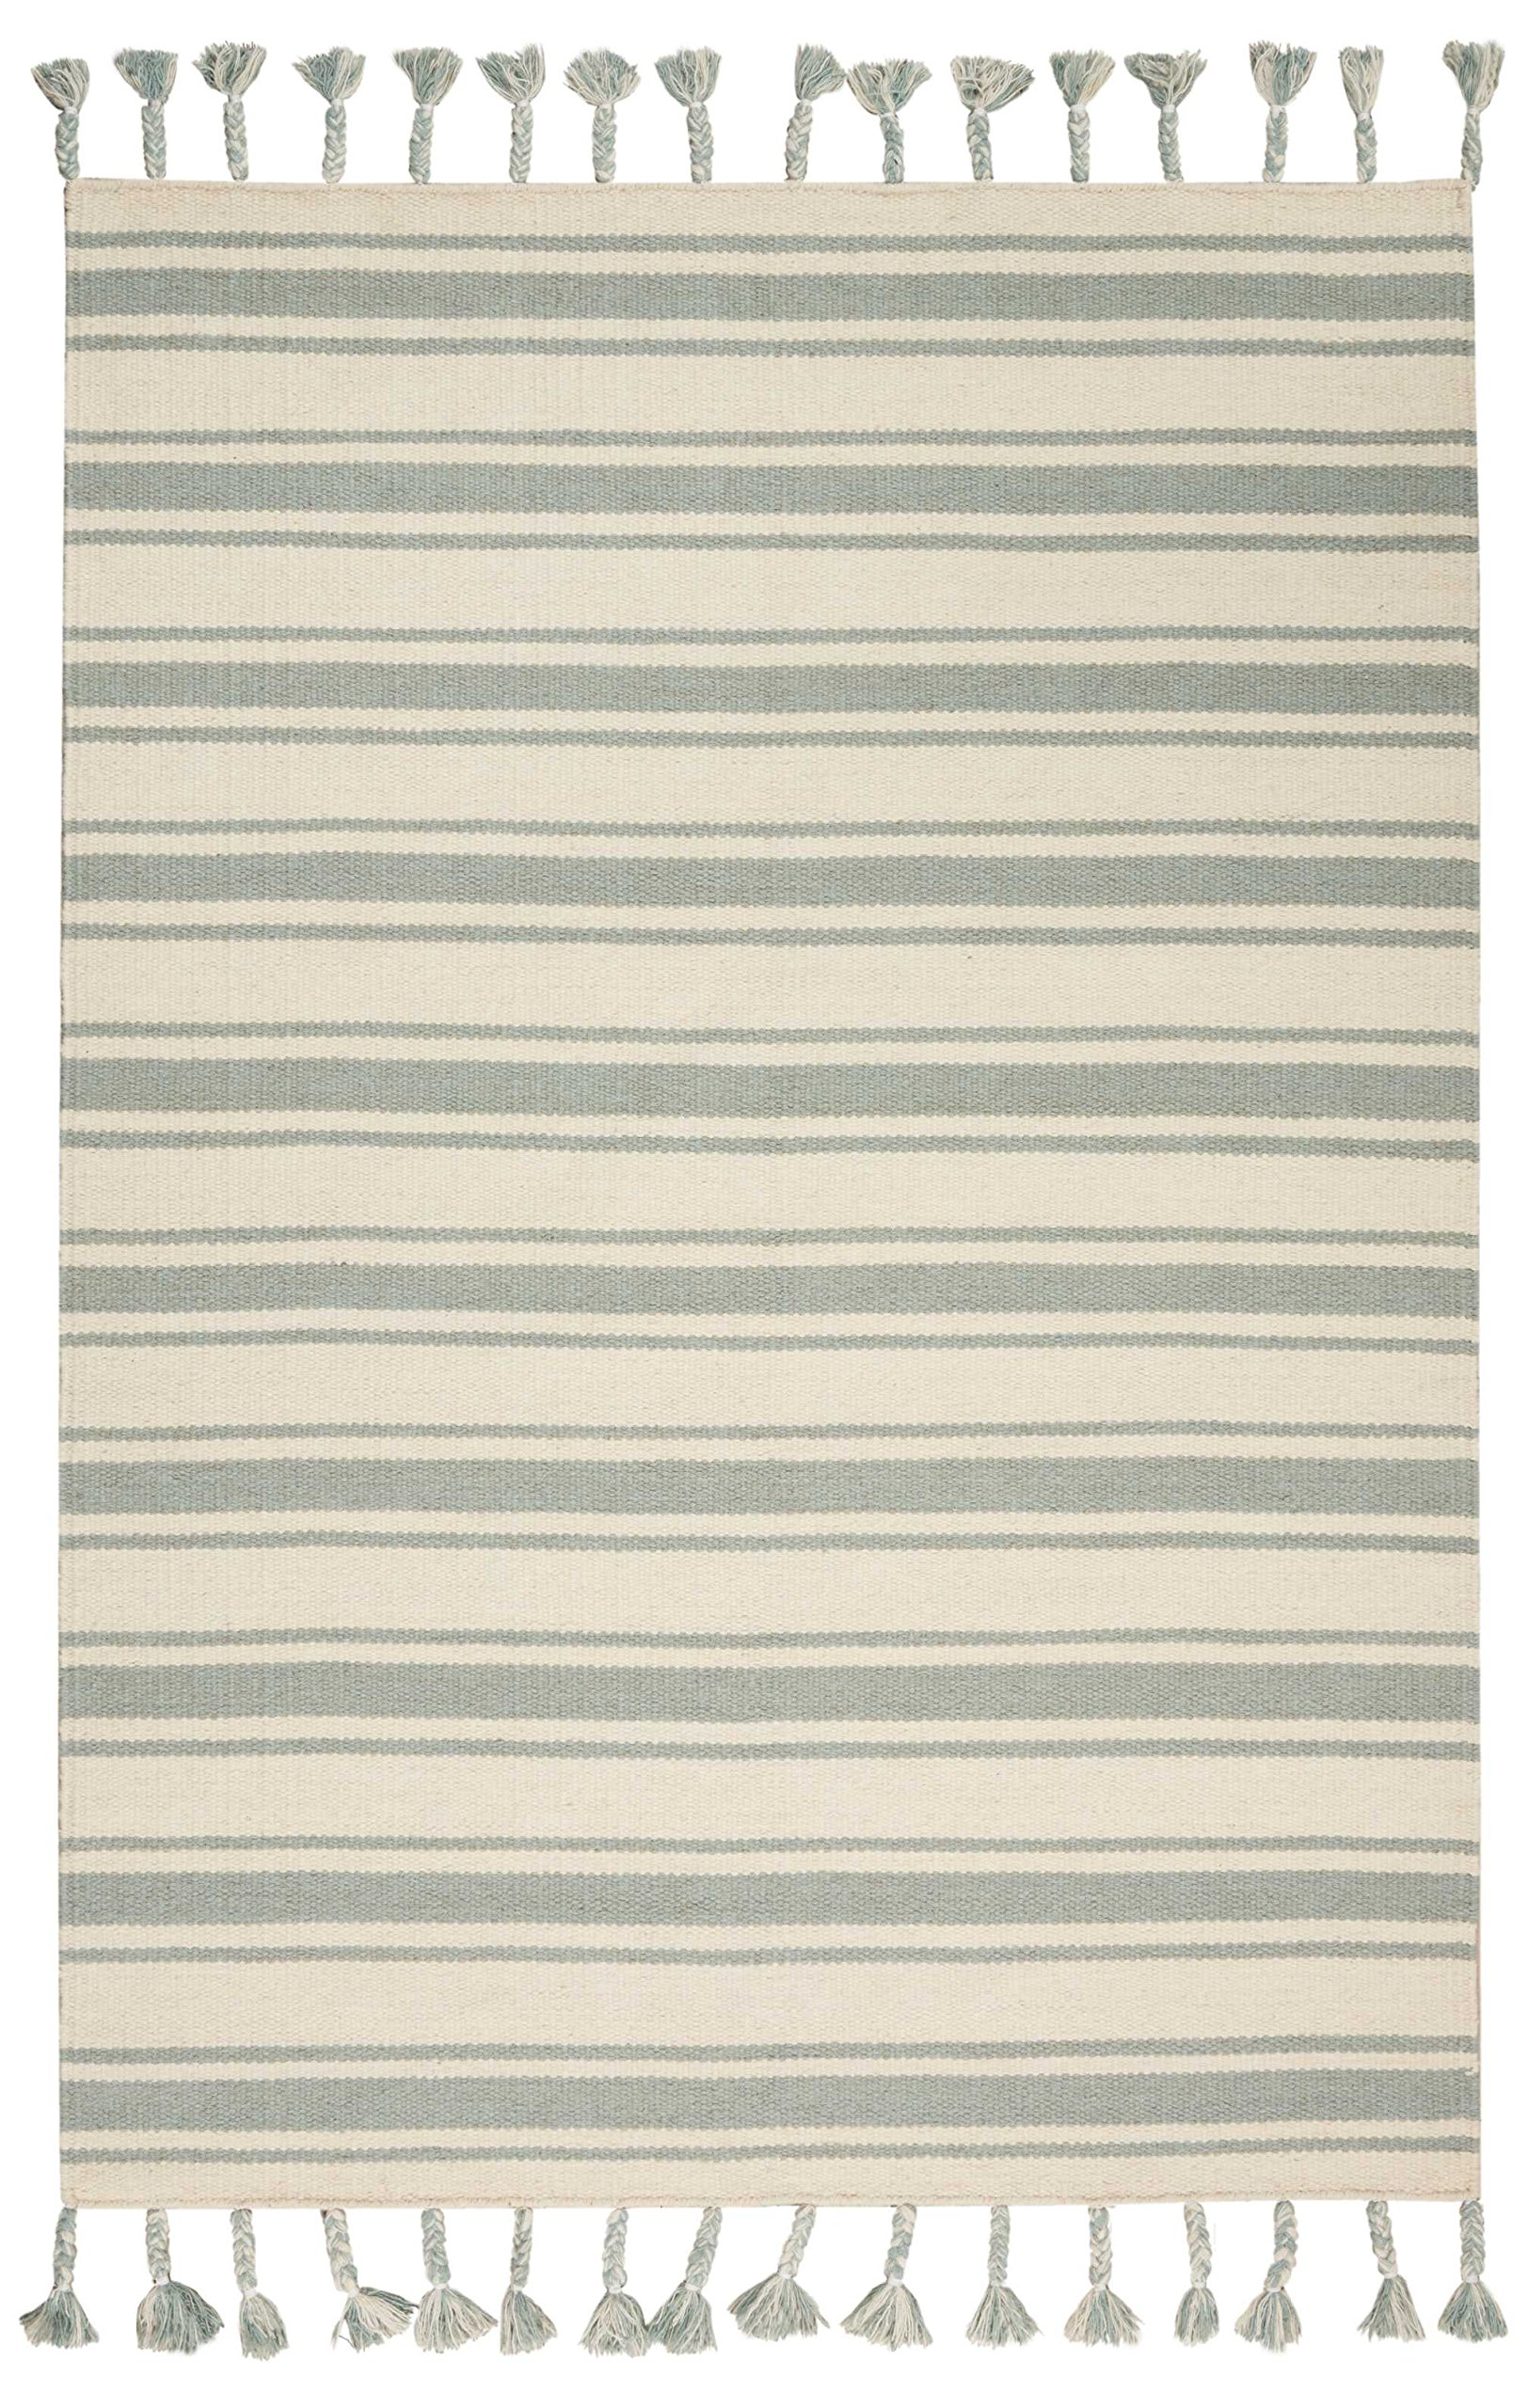 Nourison SLN01 Solano Striped Wool Ivory Spa Area Rug 5'X7'6''